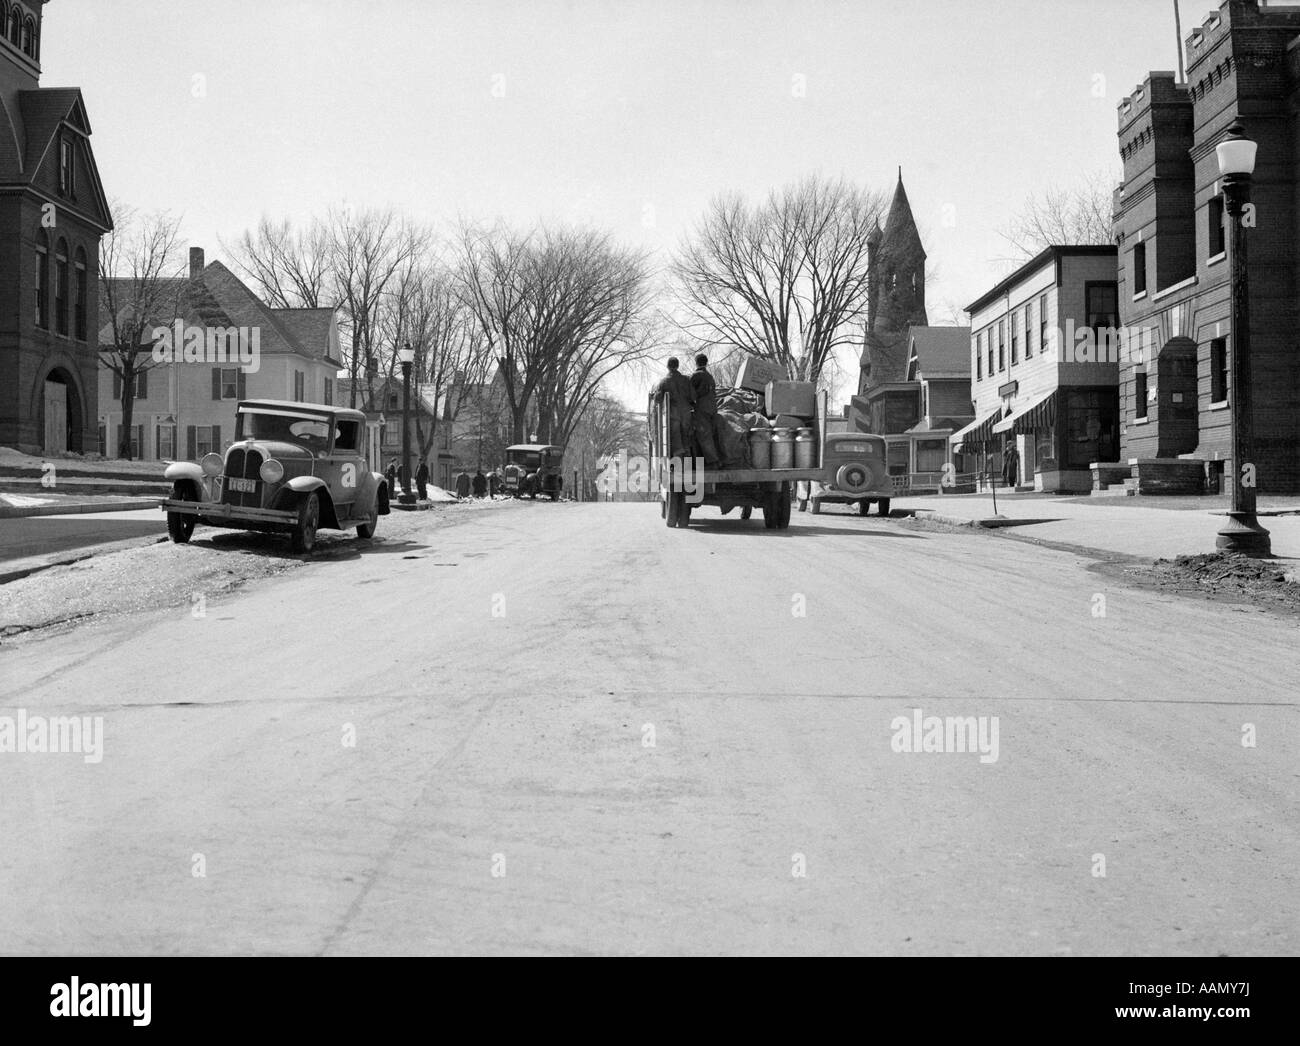 1930s 1940S SMALL TOWN AMERICAN CARS TRUCK ON MAIN STREET NEWPORT VERMONT USA - Stock Image